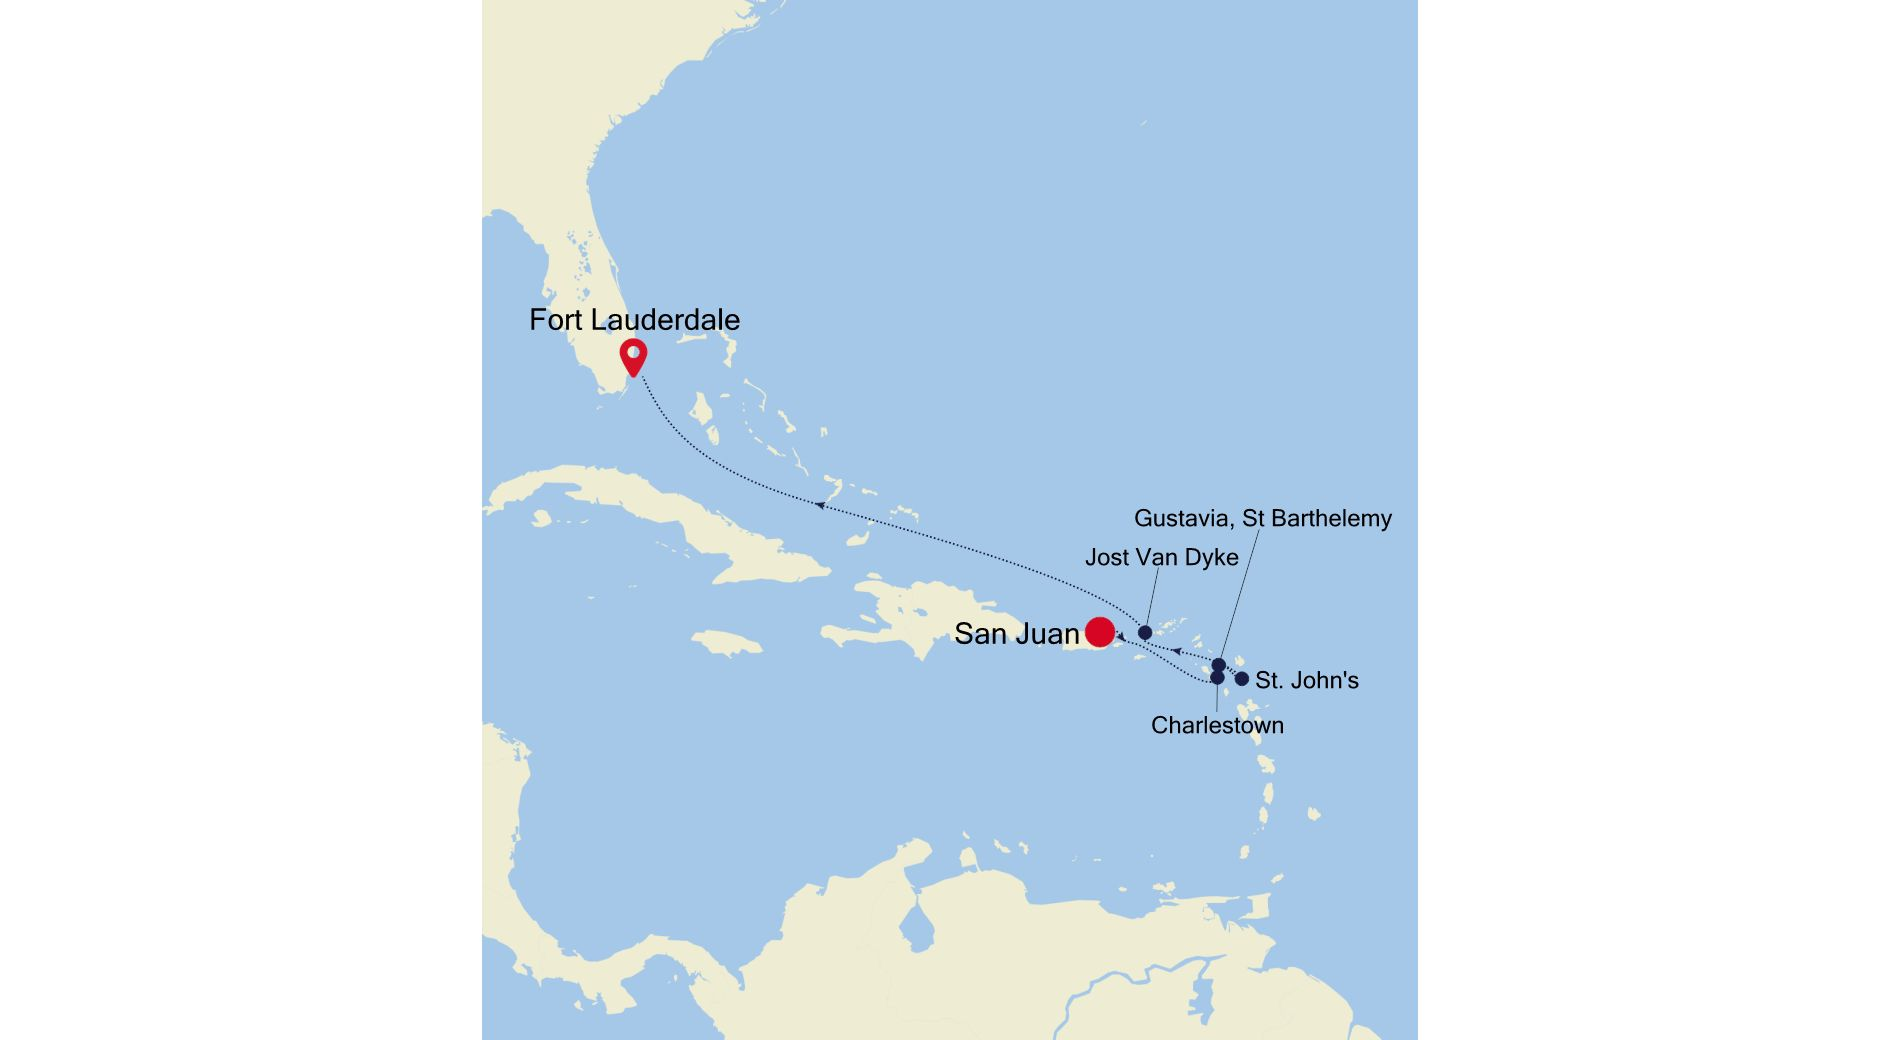 2001A - San Juan to Fort Lauderdale